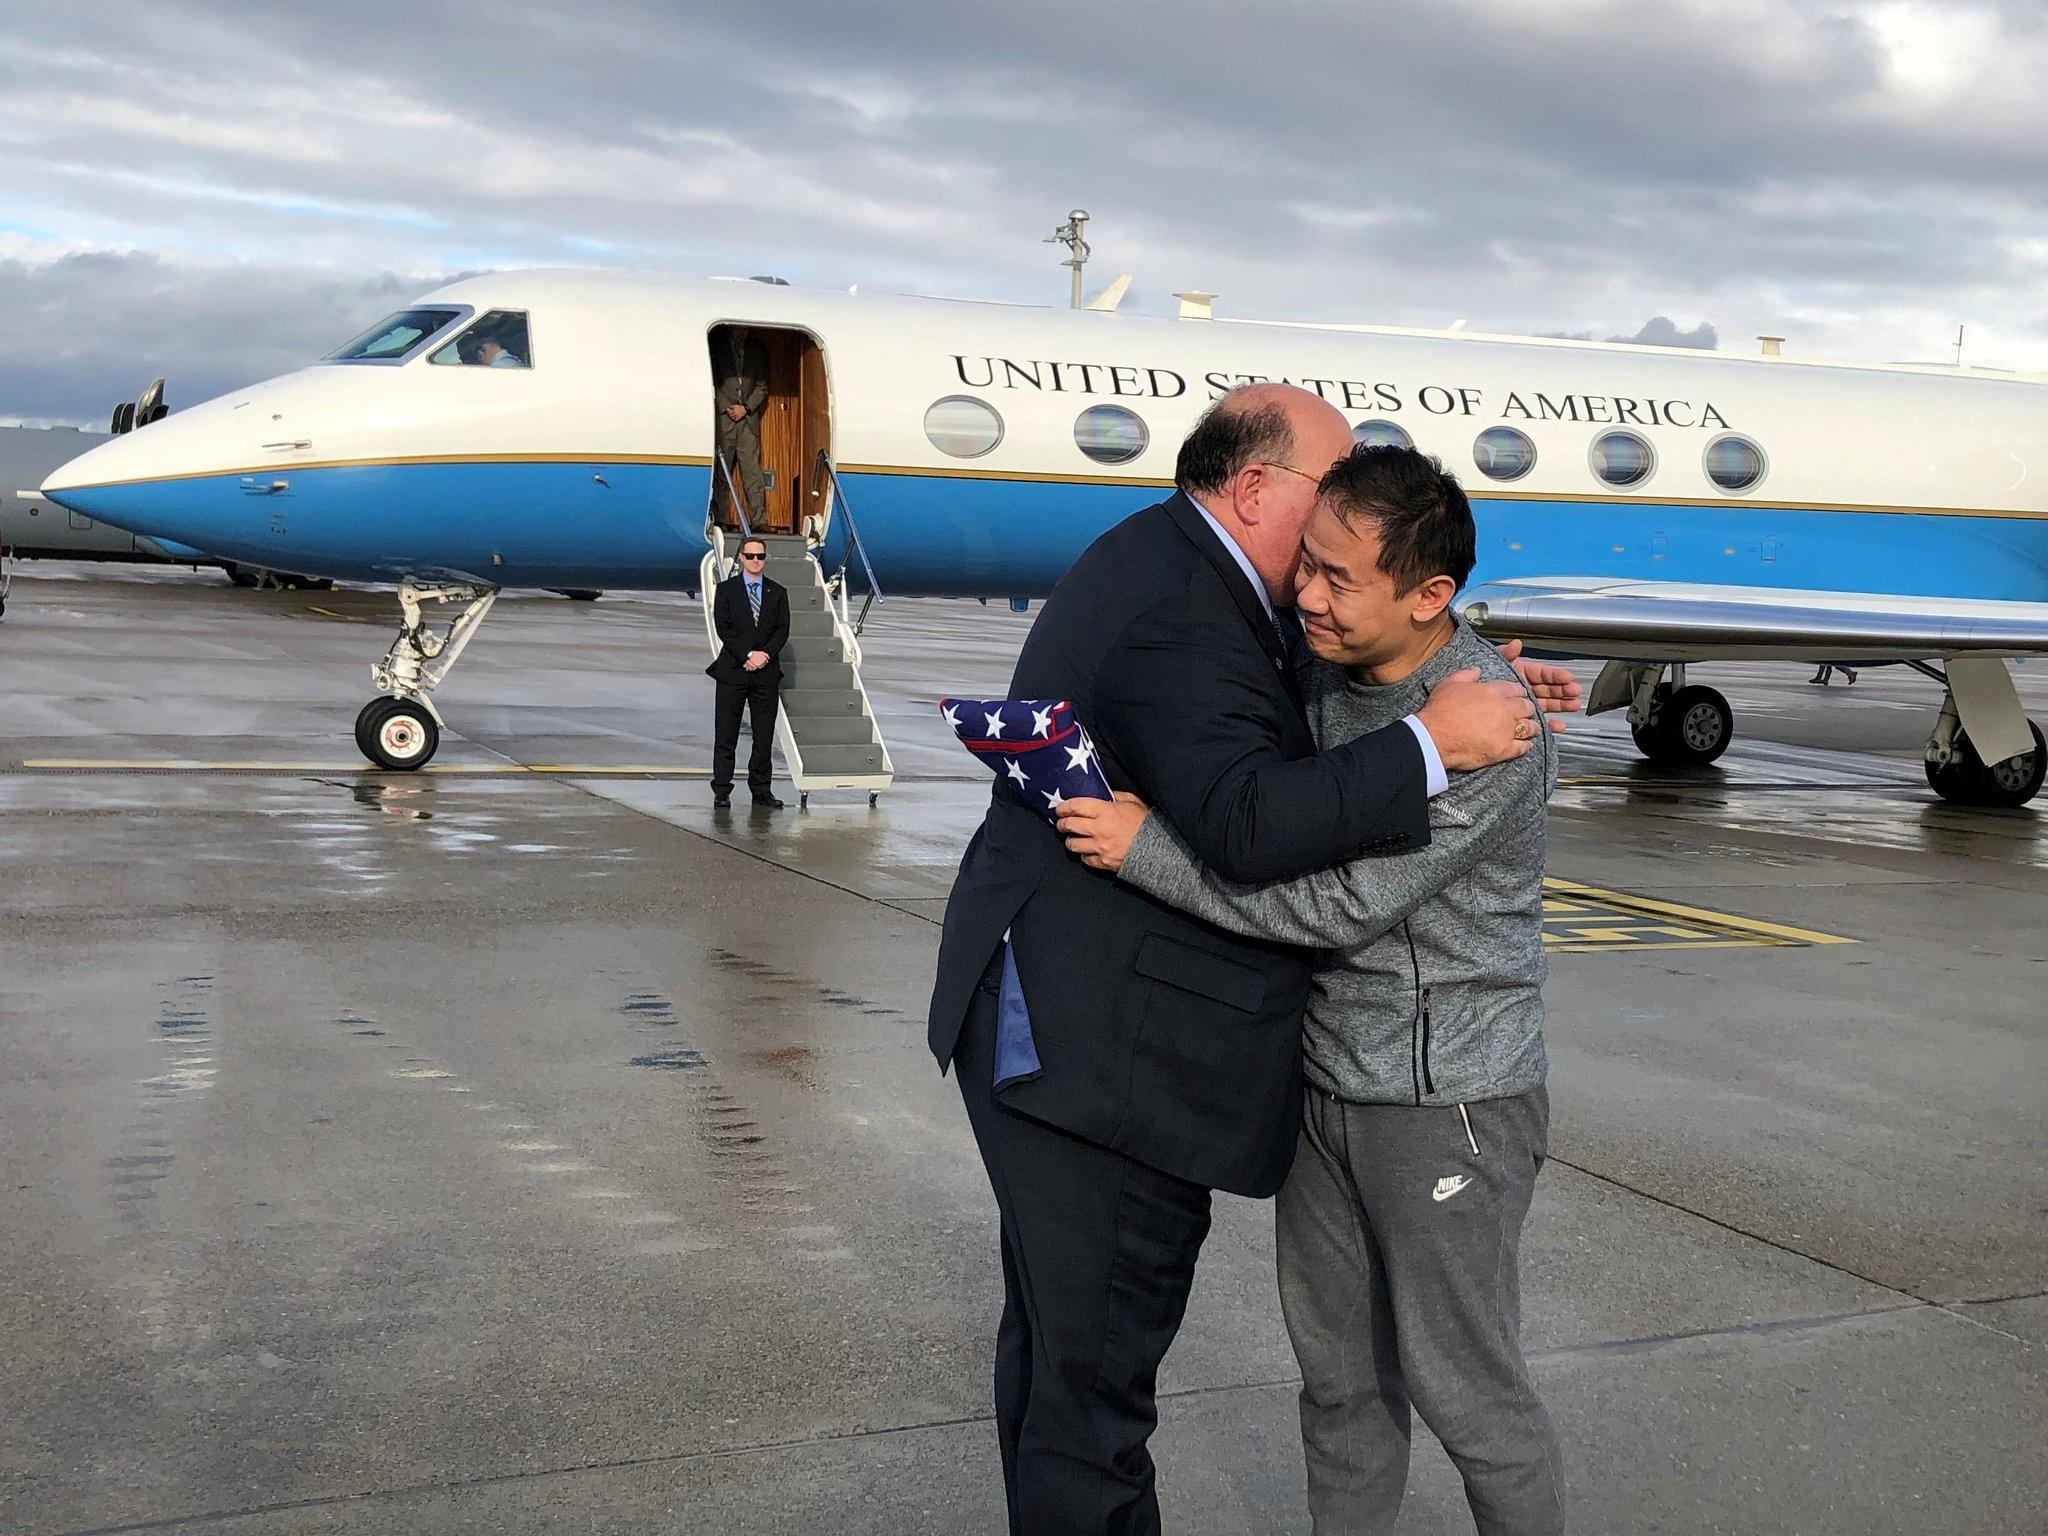 Chinese-American freed from Iran, Iranian freed from U.S. in prisoner swap